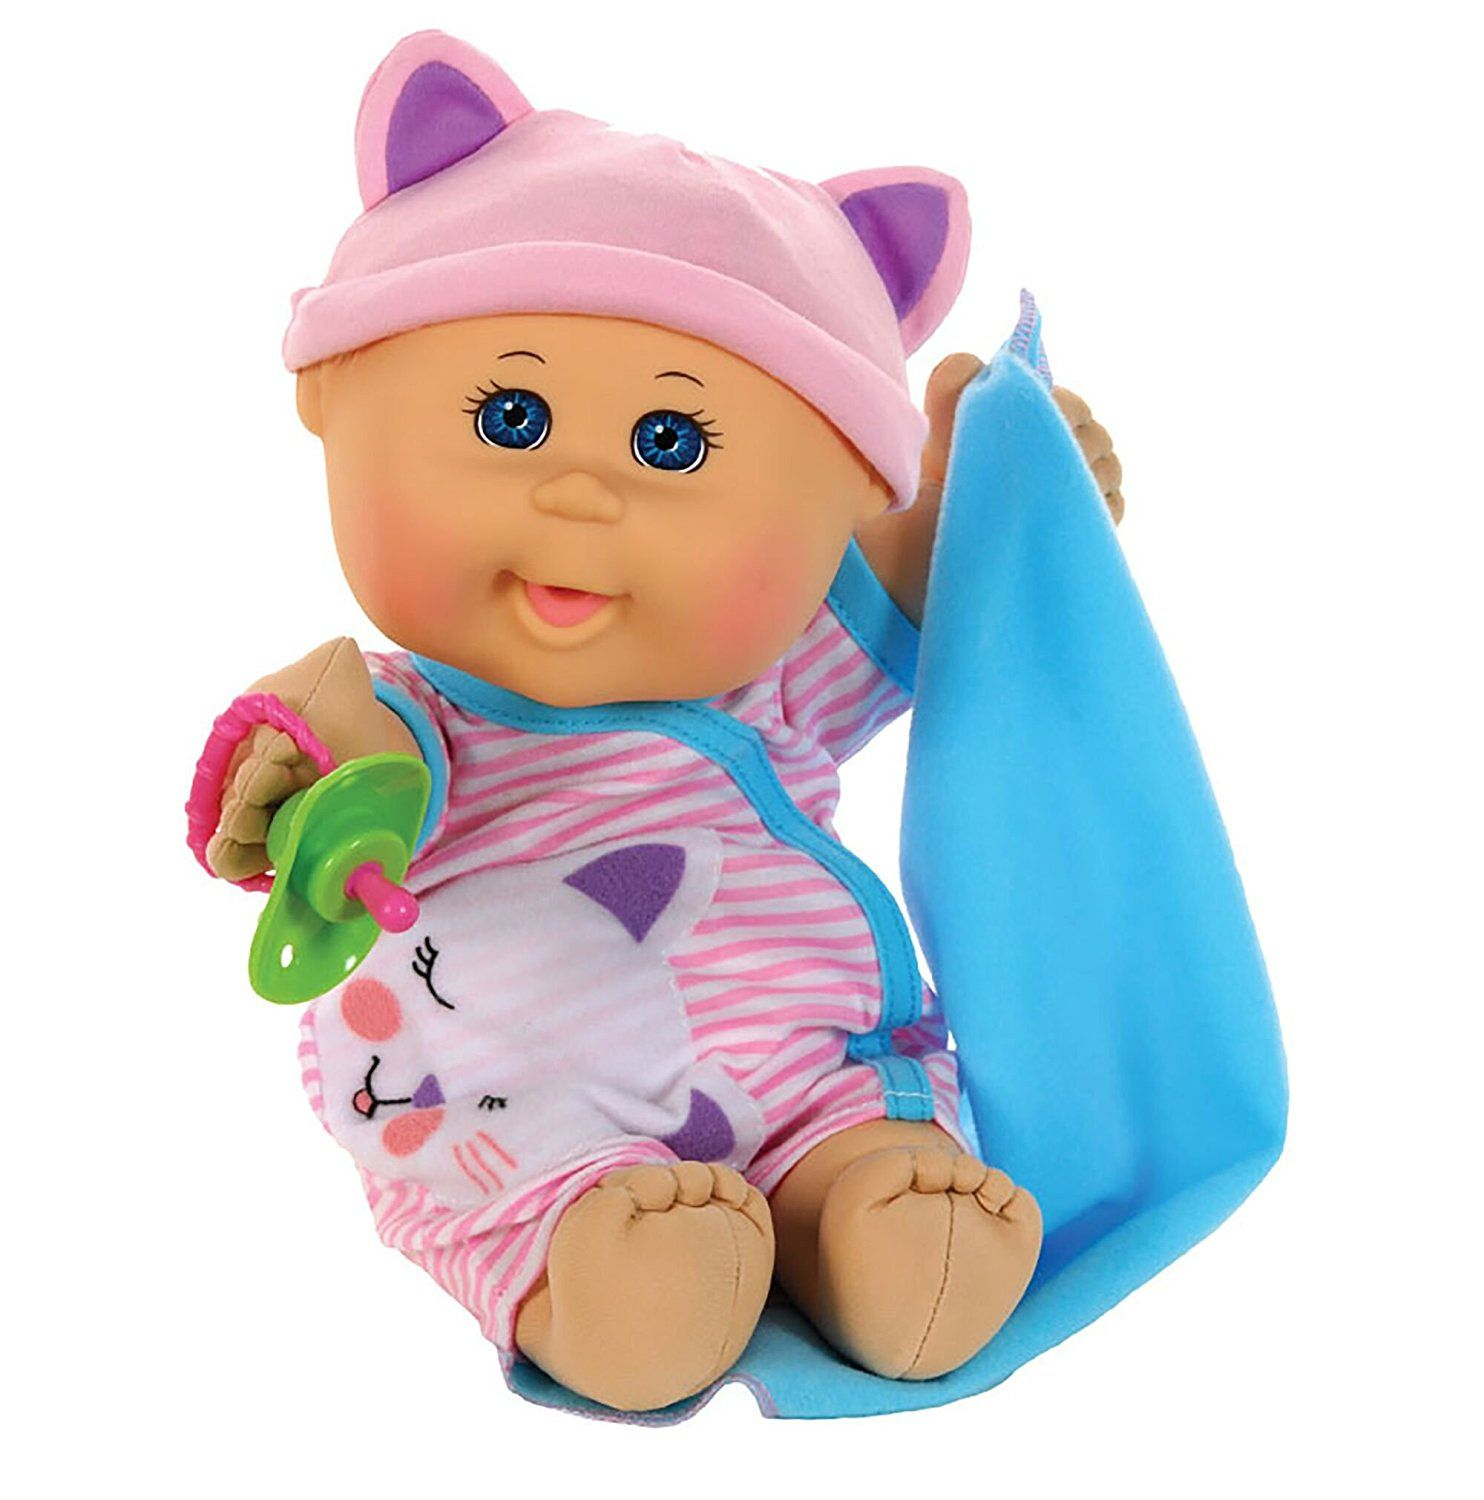 Cabbage Patch Kids 12 5 Naptime Babies Bald Blue Eye Girl Baby Doll Pink Stripe Jumper Fashion Toys Games Cabbage Patch Dolls